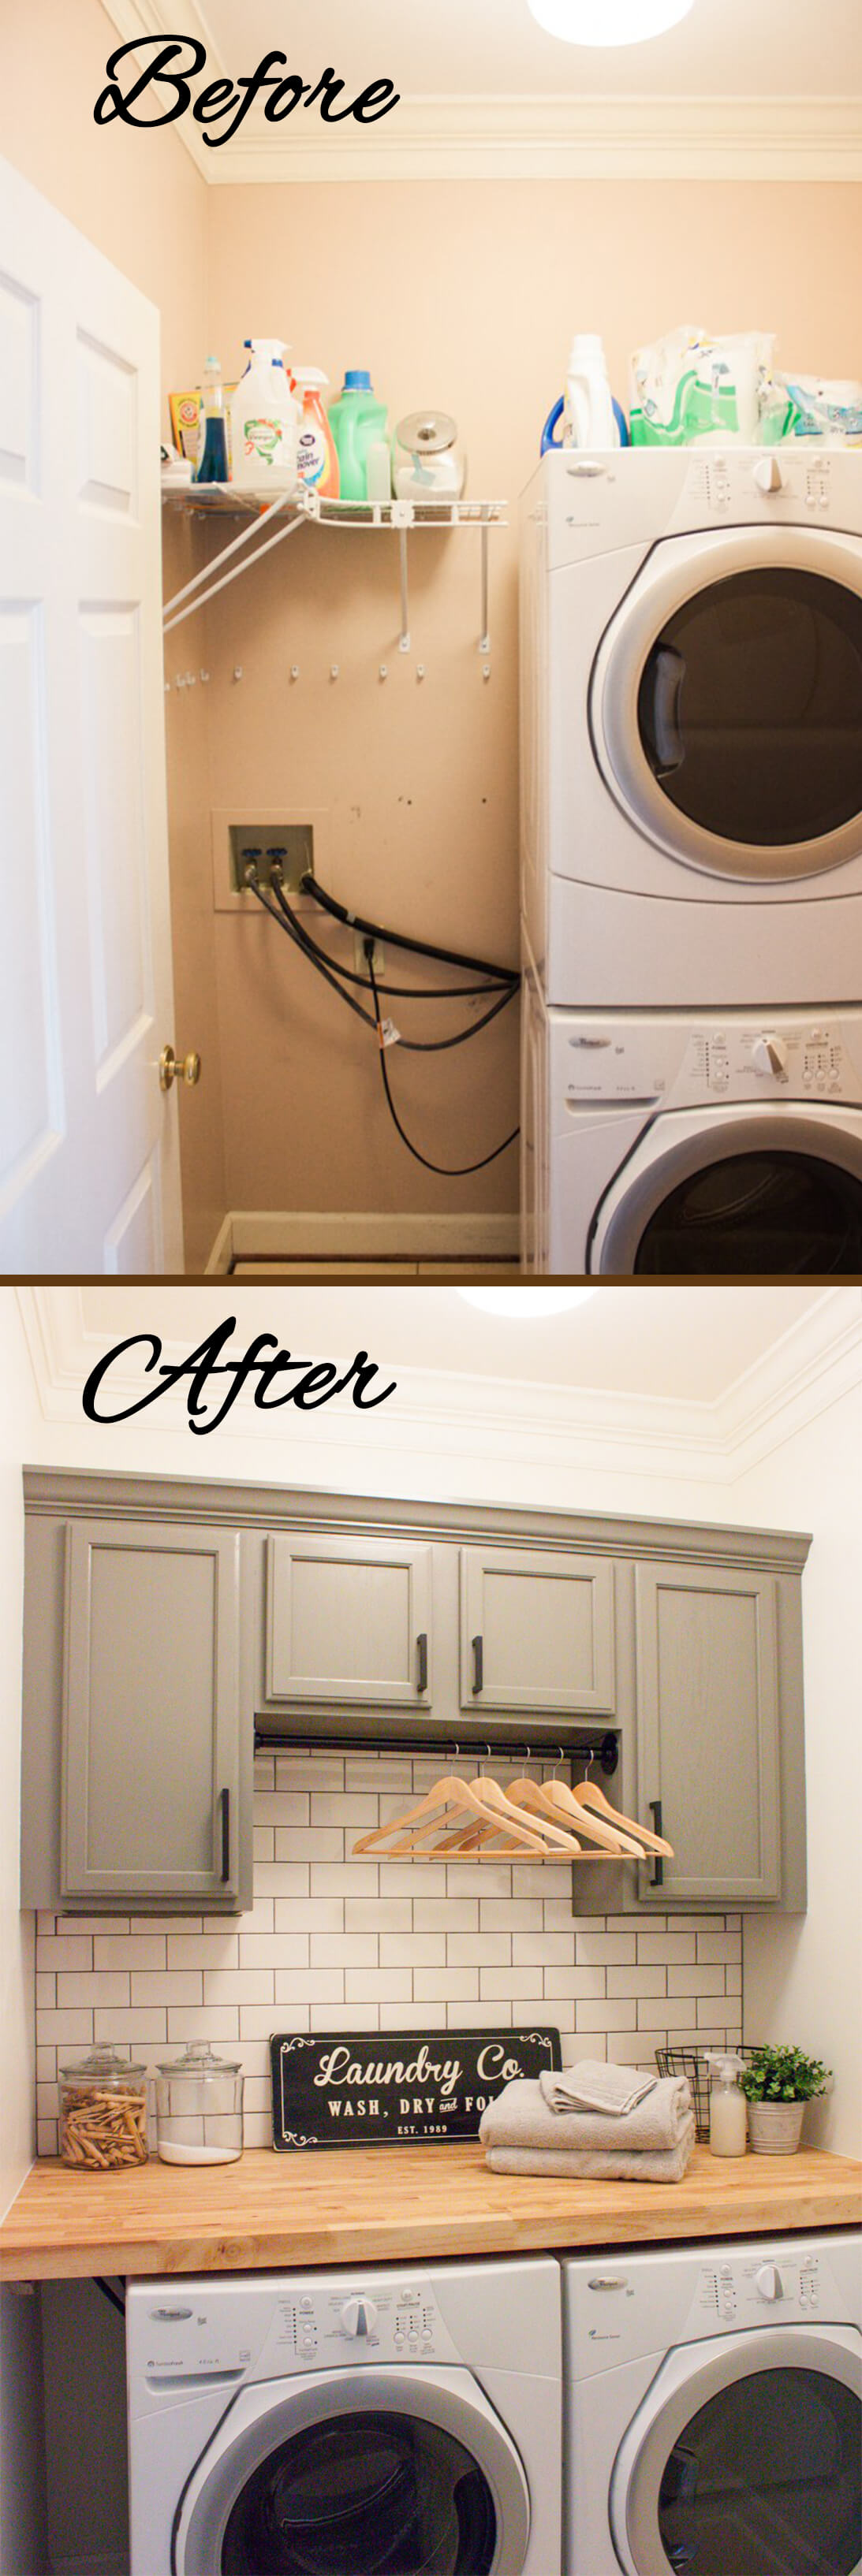 Rustic Laundry Room Ideas For Small Space